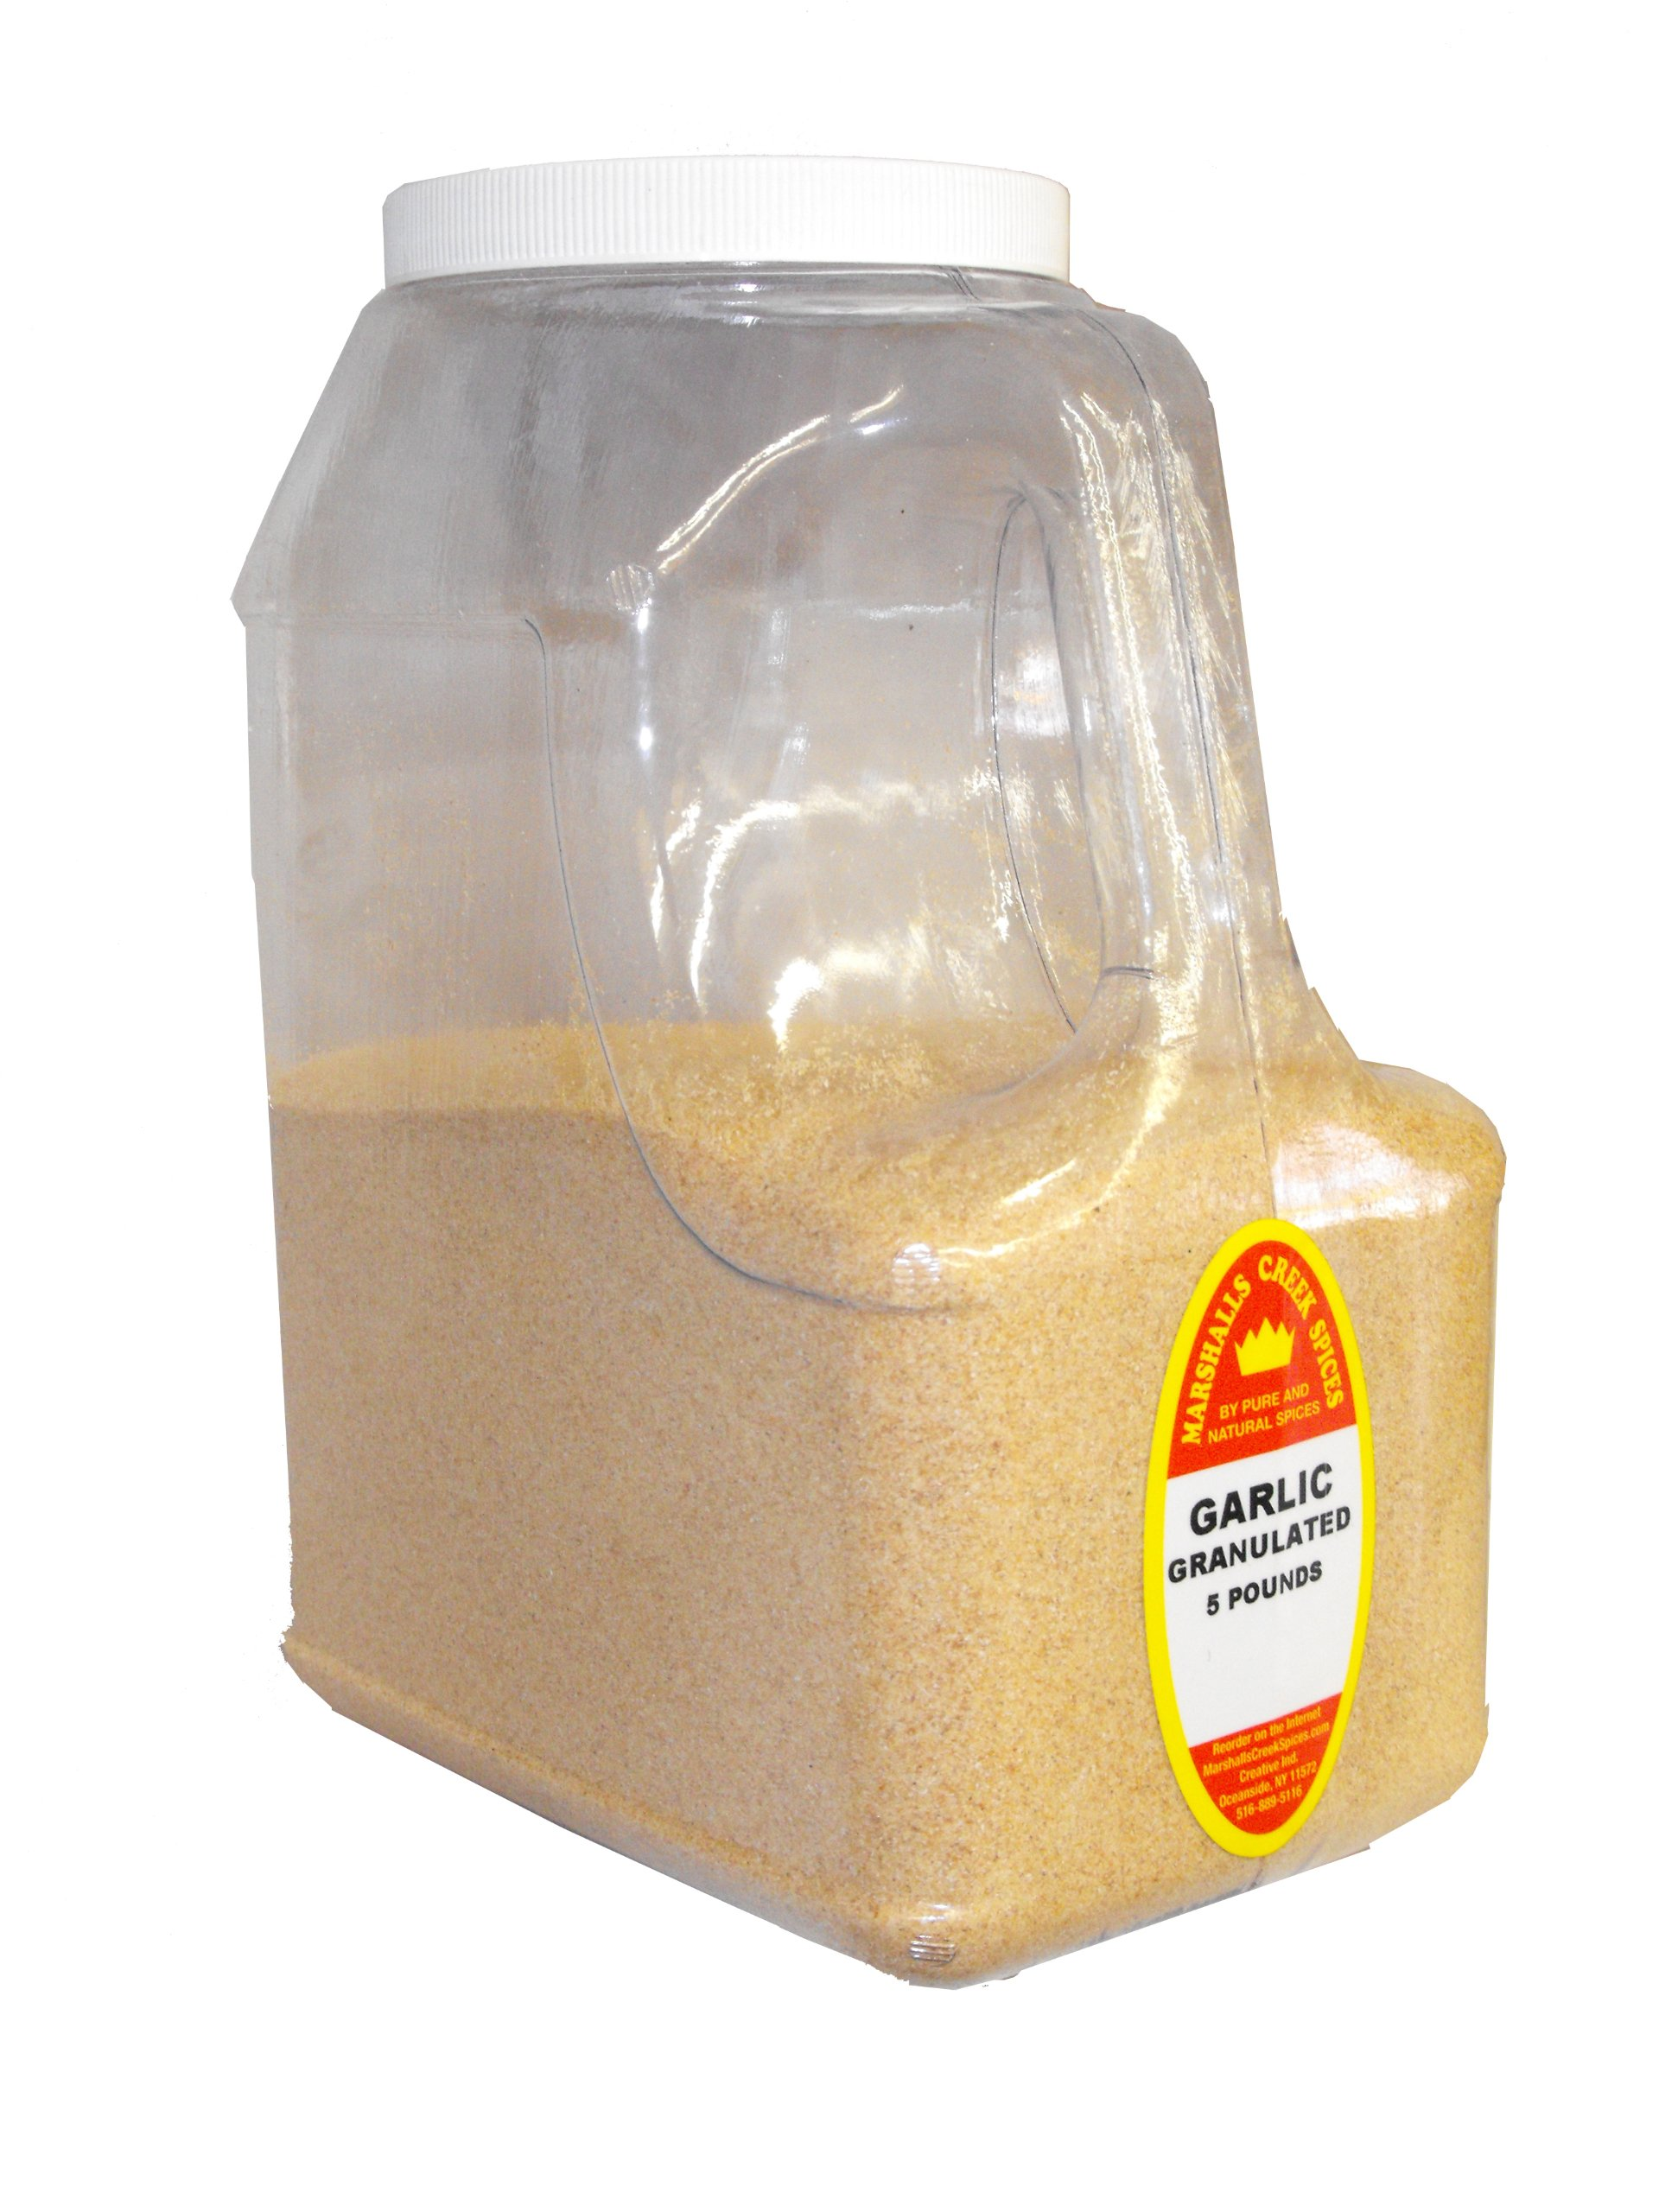 Marshalls Creek Spices Garlic Powder Granulated Jug Restaurant Size, 5 Pound